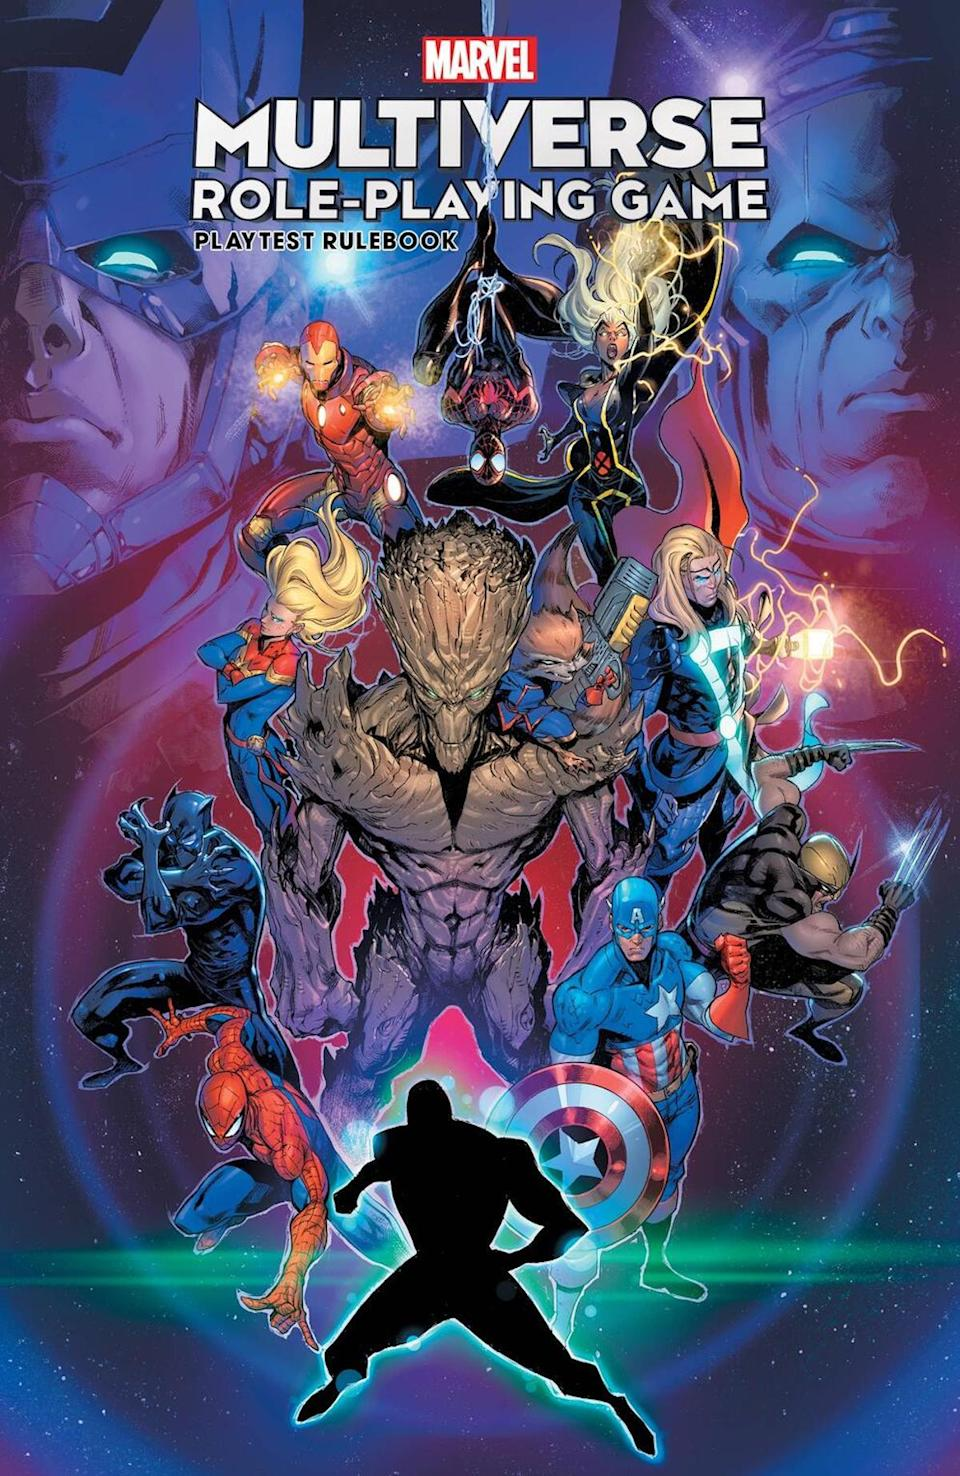 Illustration of various Marvel characters standing together against a swirly purple backdrop